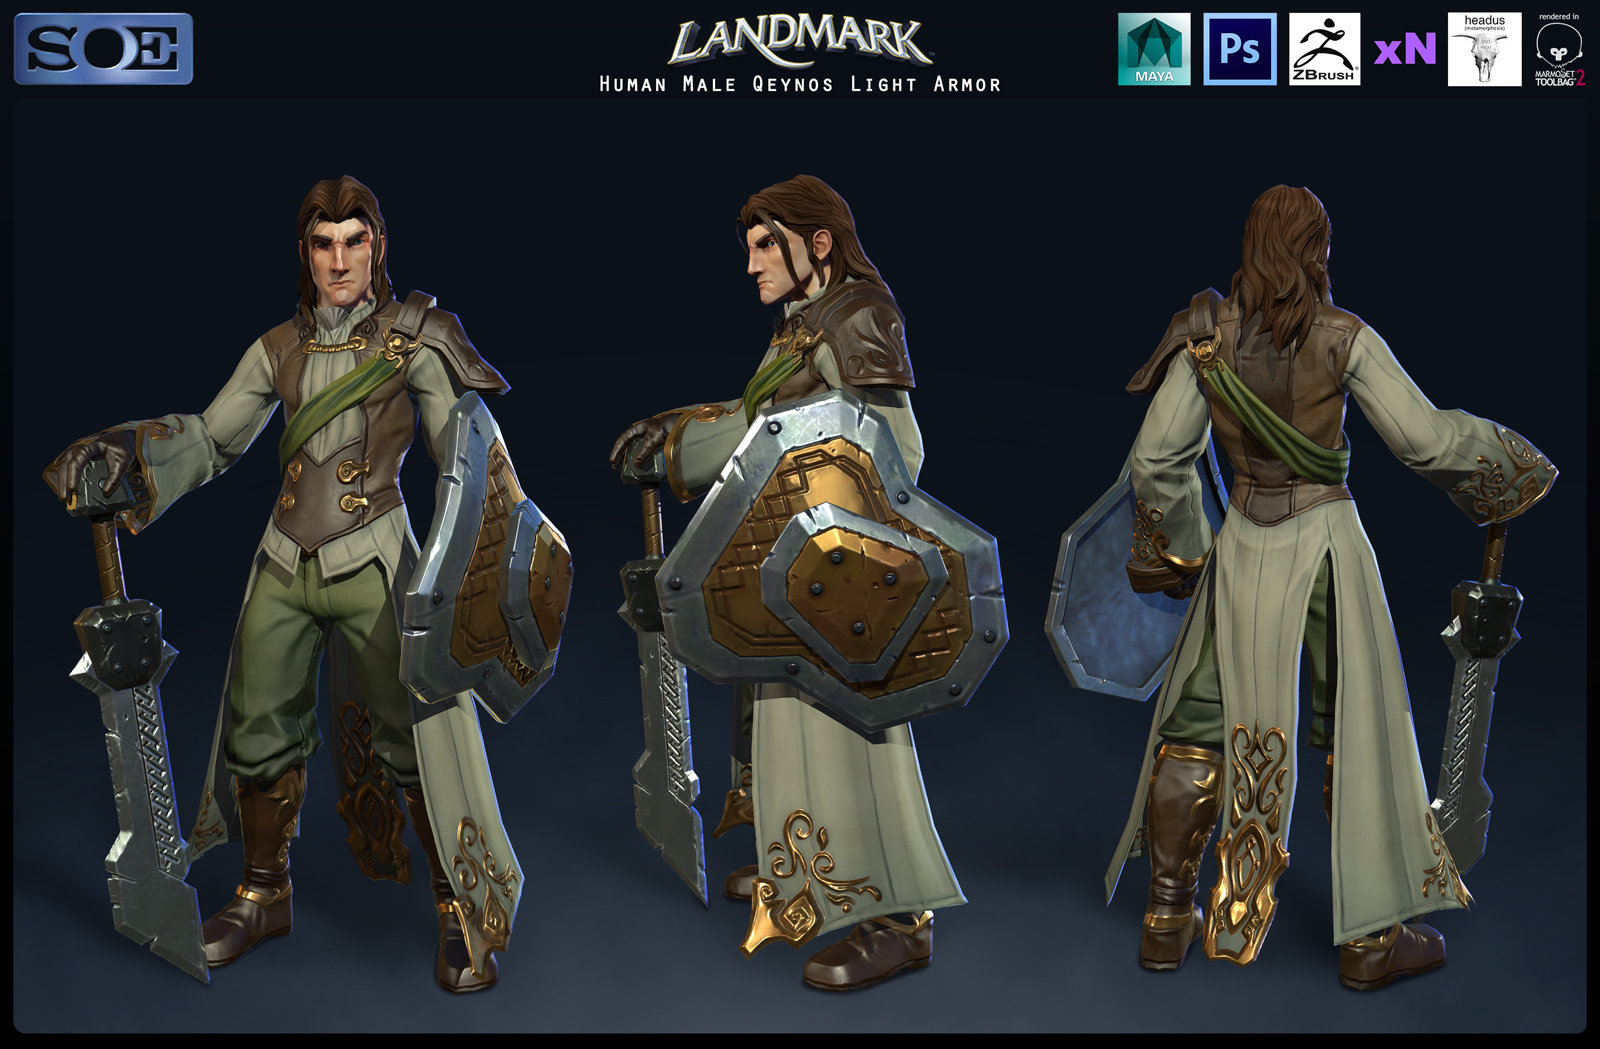 Human Male Qeynos Light Armor